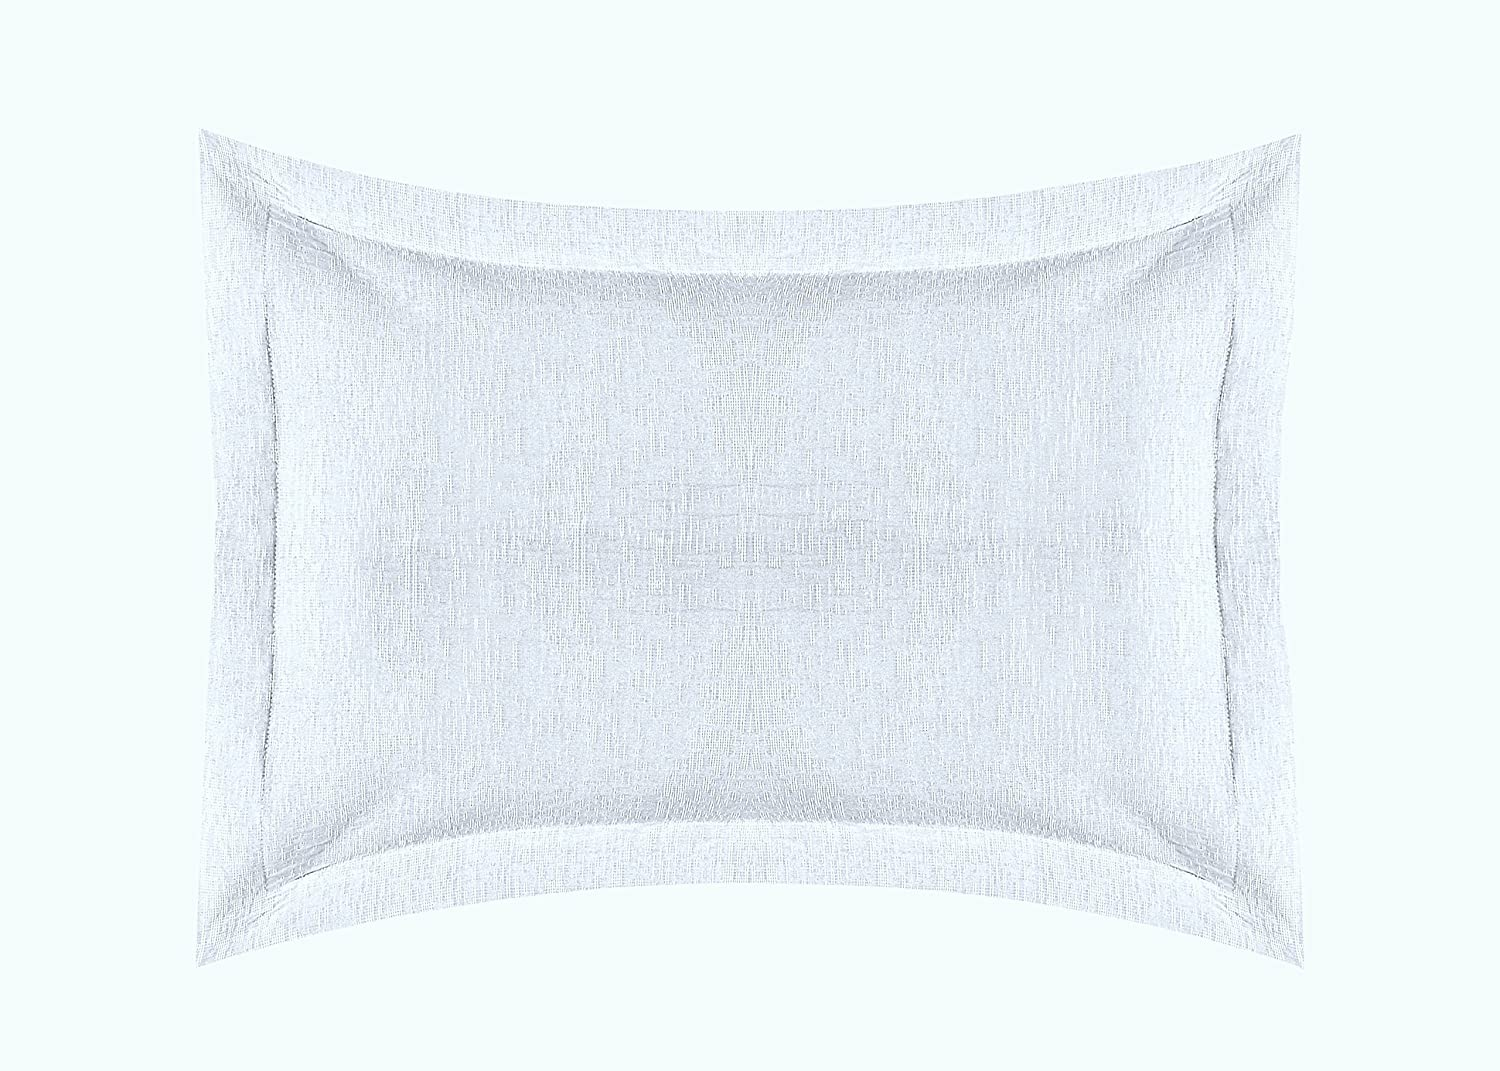 Europa Fine Linens Ikat Matelasse Bedding, Coverlet Twin Size 63-Inch by 88-Inch, White 006305